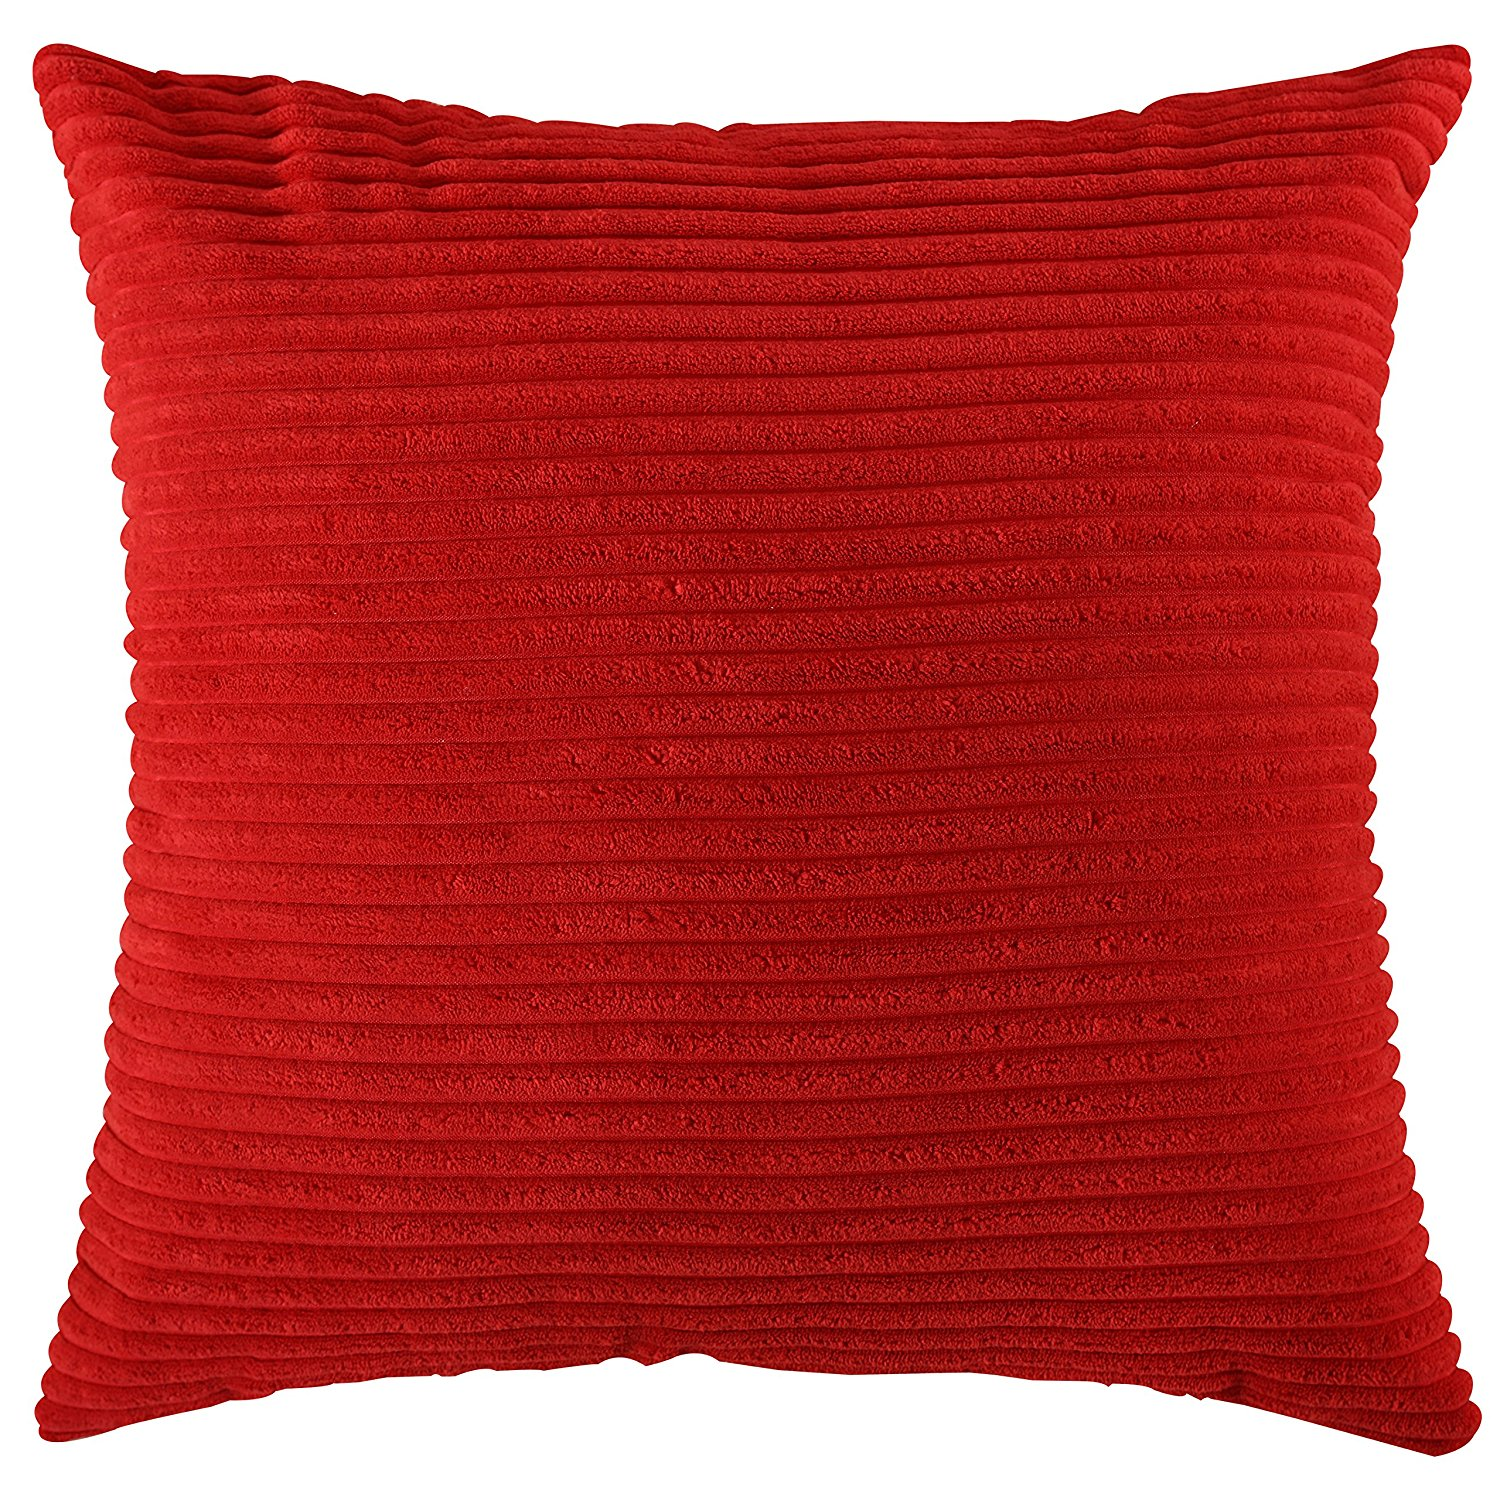 Home Brilliant Spring Decoration Solid Red Soft Striped Velvet Corduroy Plush Throw Cushion Cover for Square Pillow (Red, 18 x 18 inch, 45cm)